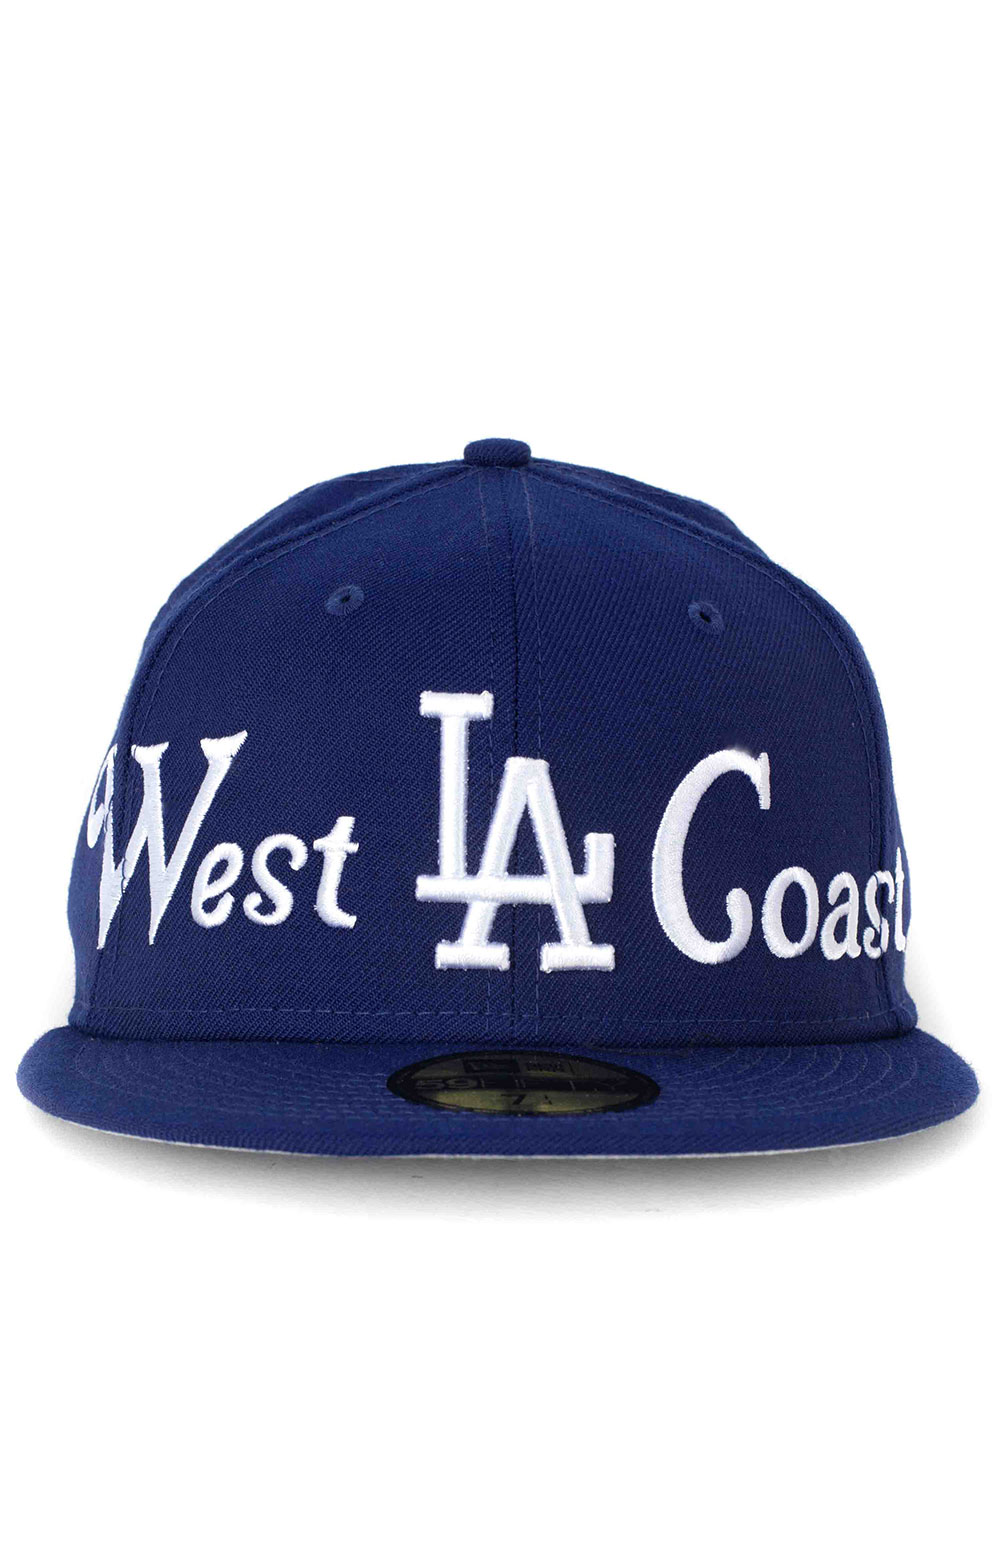 LA Dodgers City Nicknames 59Fifty Fitted Hat - Royal Blue  2